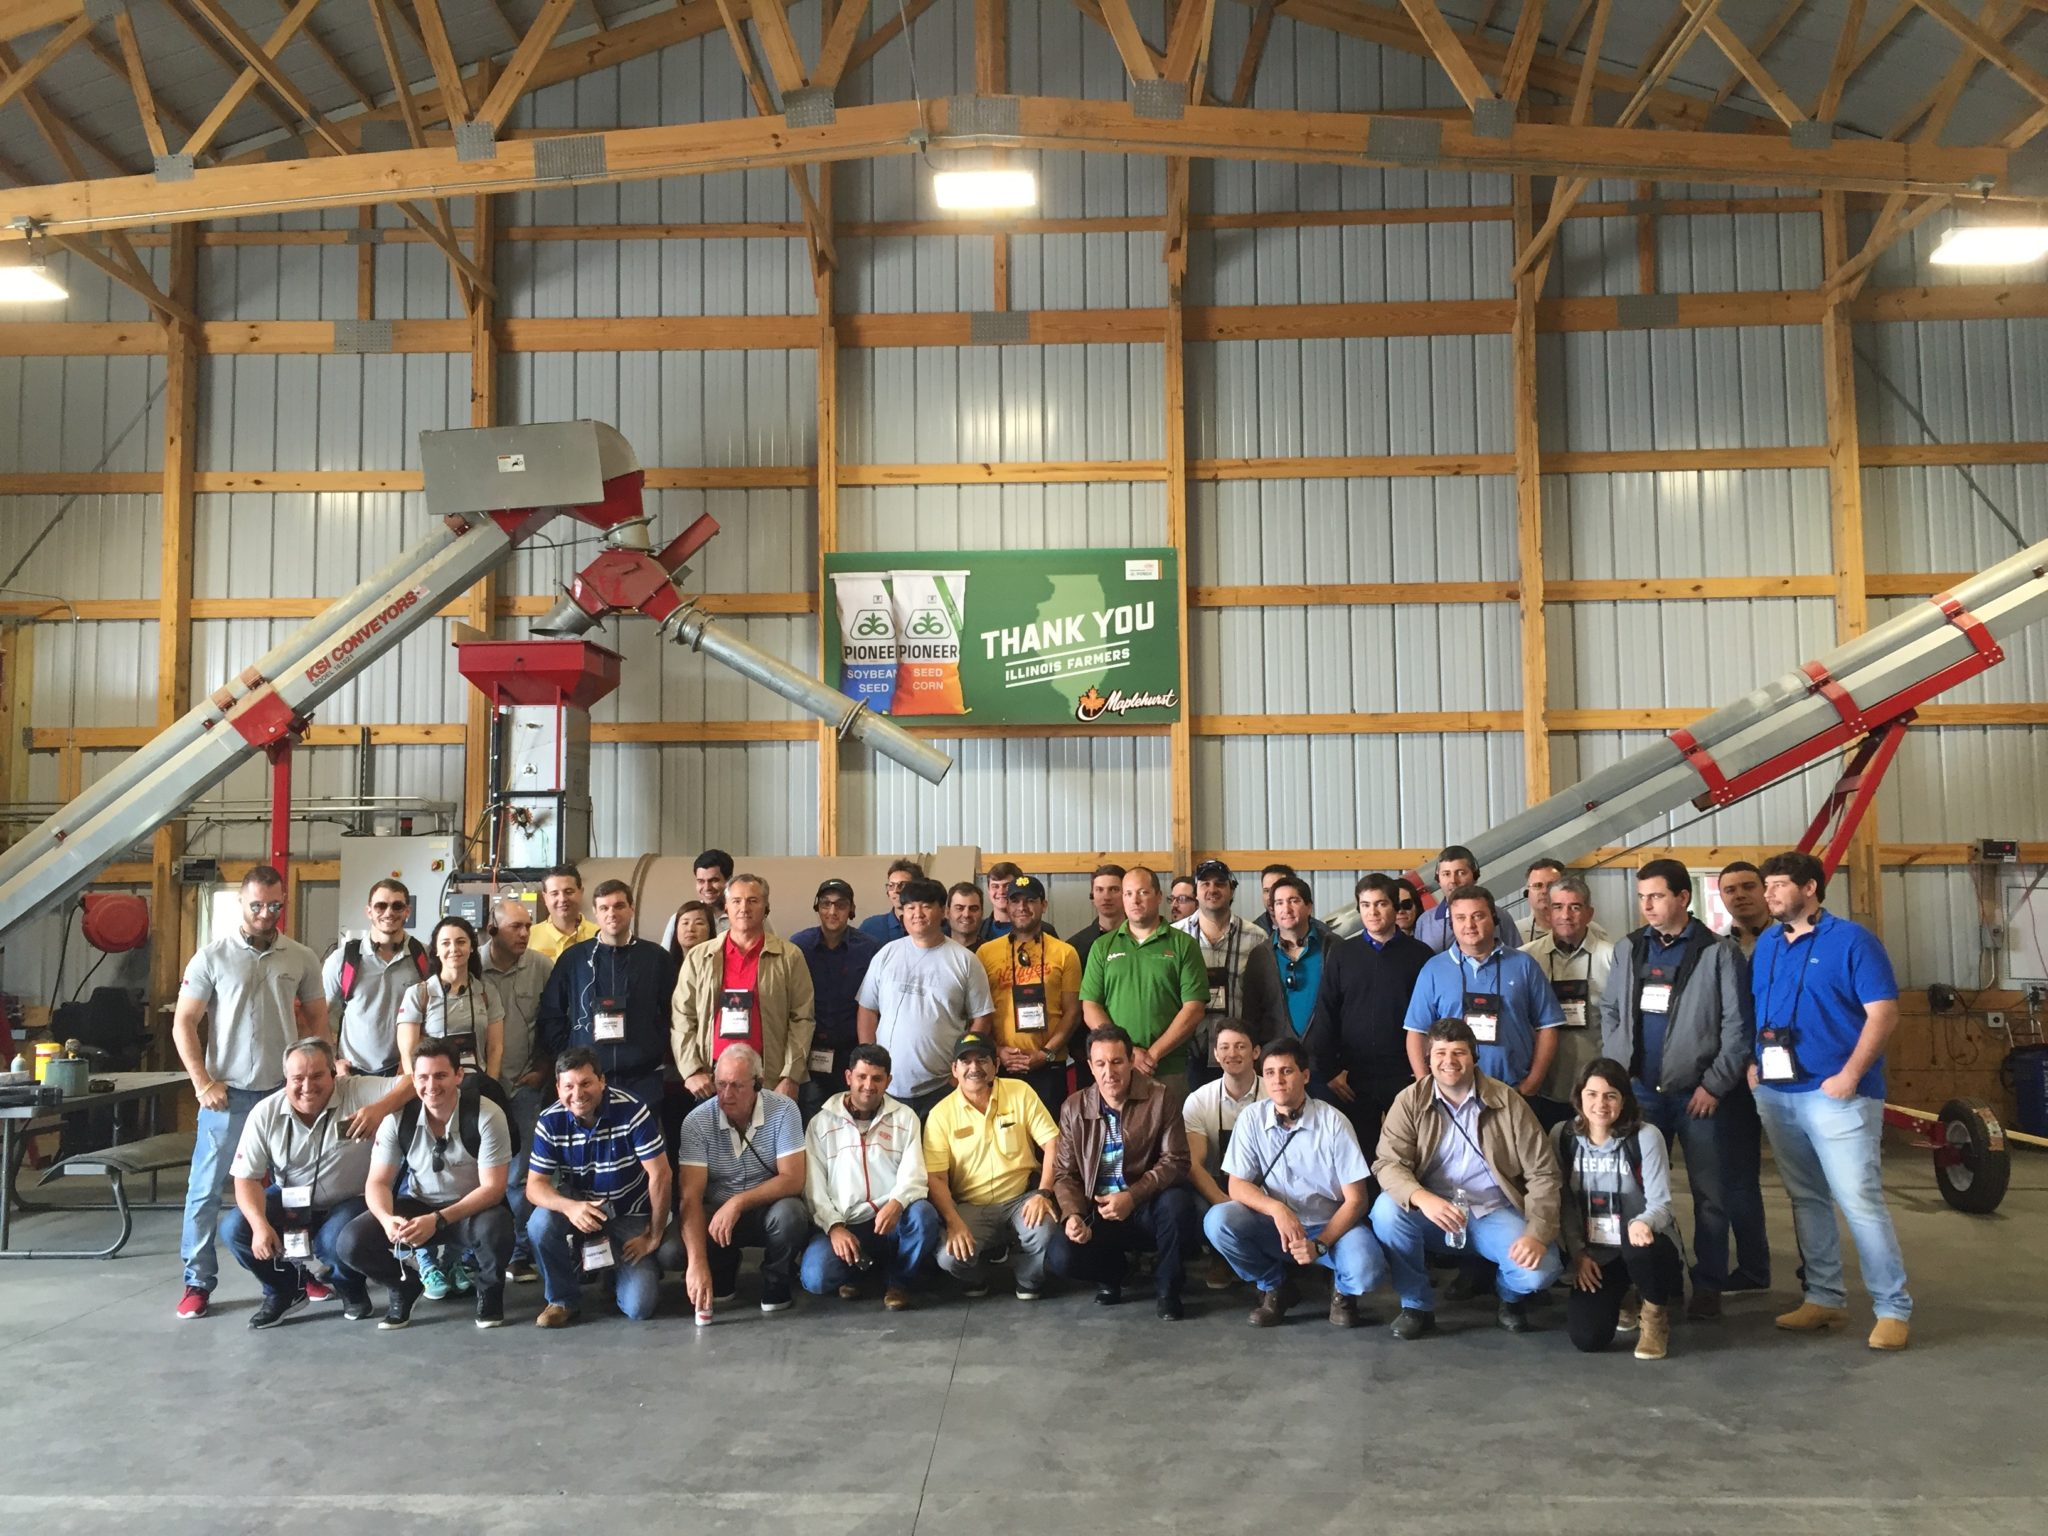 agtours.us tour group in barn with farm equiptment